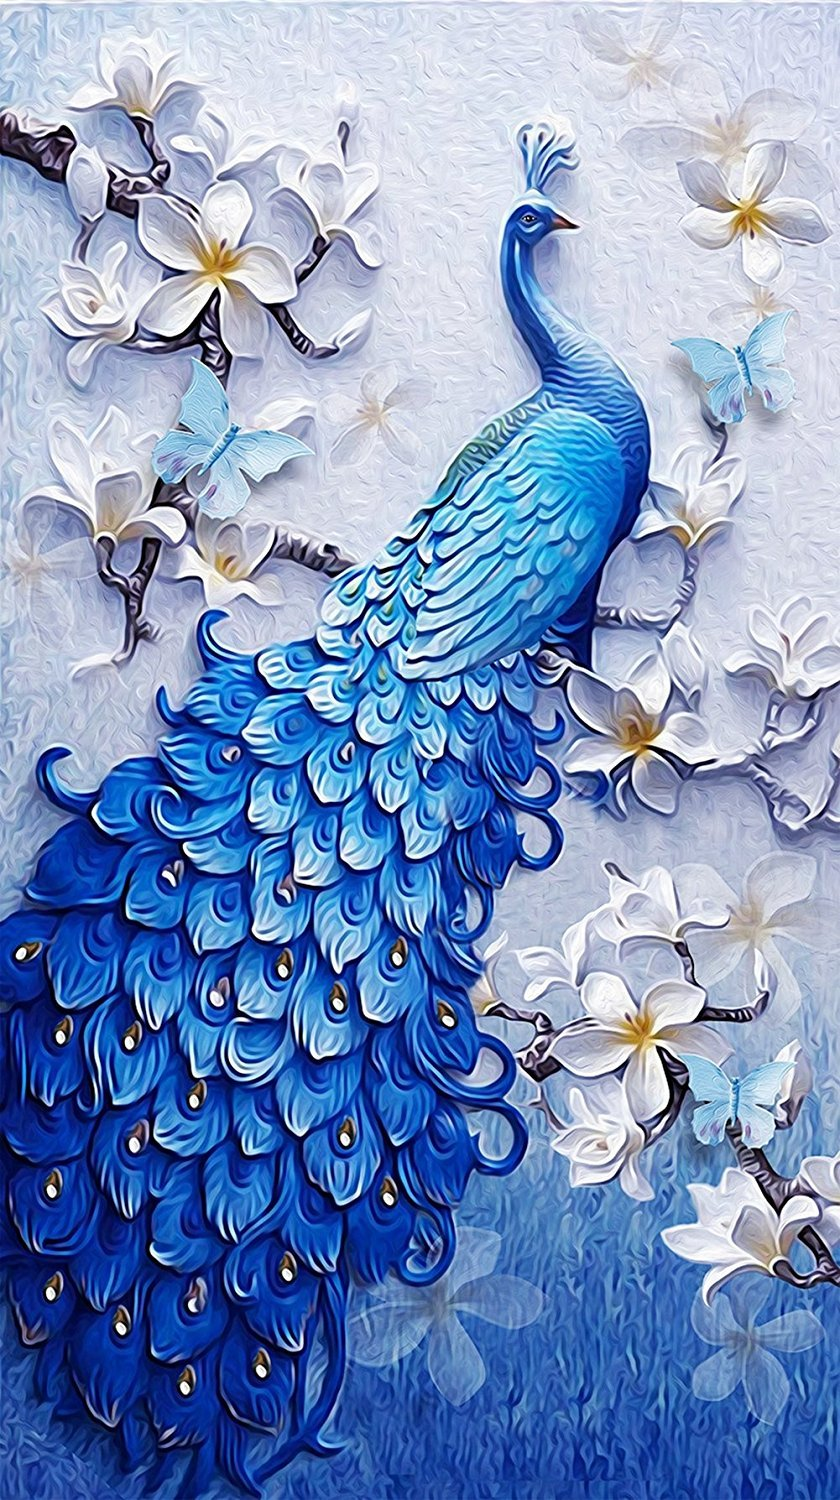 TOCARE DIY 5D Diamond Painting by Numbers Kits for Adults 45x75CM/18x30 Inch Full Diamond Large Lucky Bird Peacock Animal Embroidery Dotz Home Wall Decor